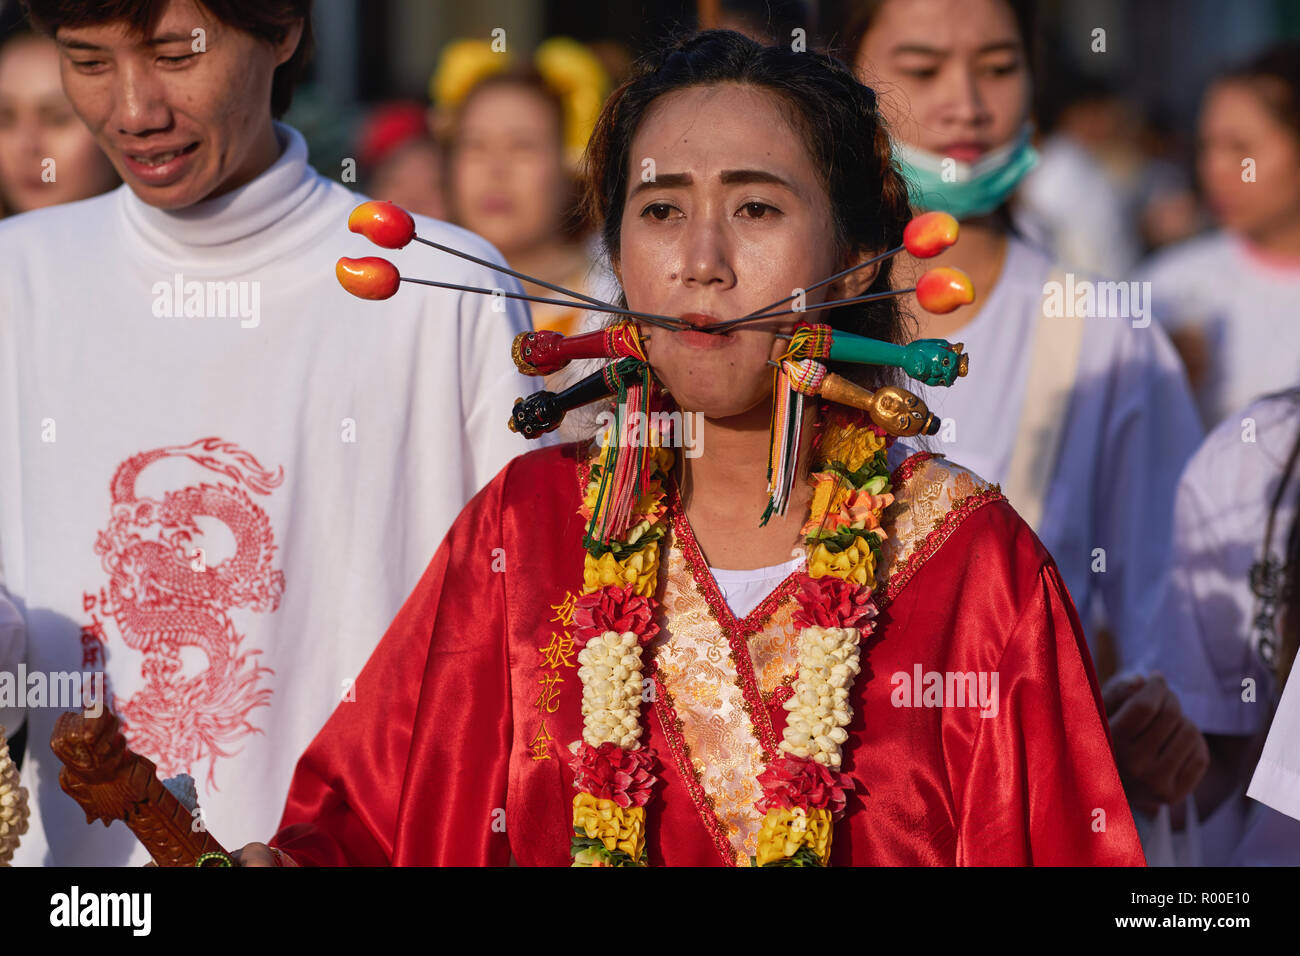 A Mah Song or spirit medium displays a pierced cheek during the annual Vegetarian Festival in Phuket, Thailand, in honour of the Chinese Emperor Gods - Stock Image